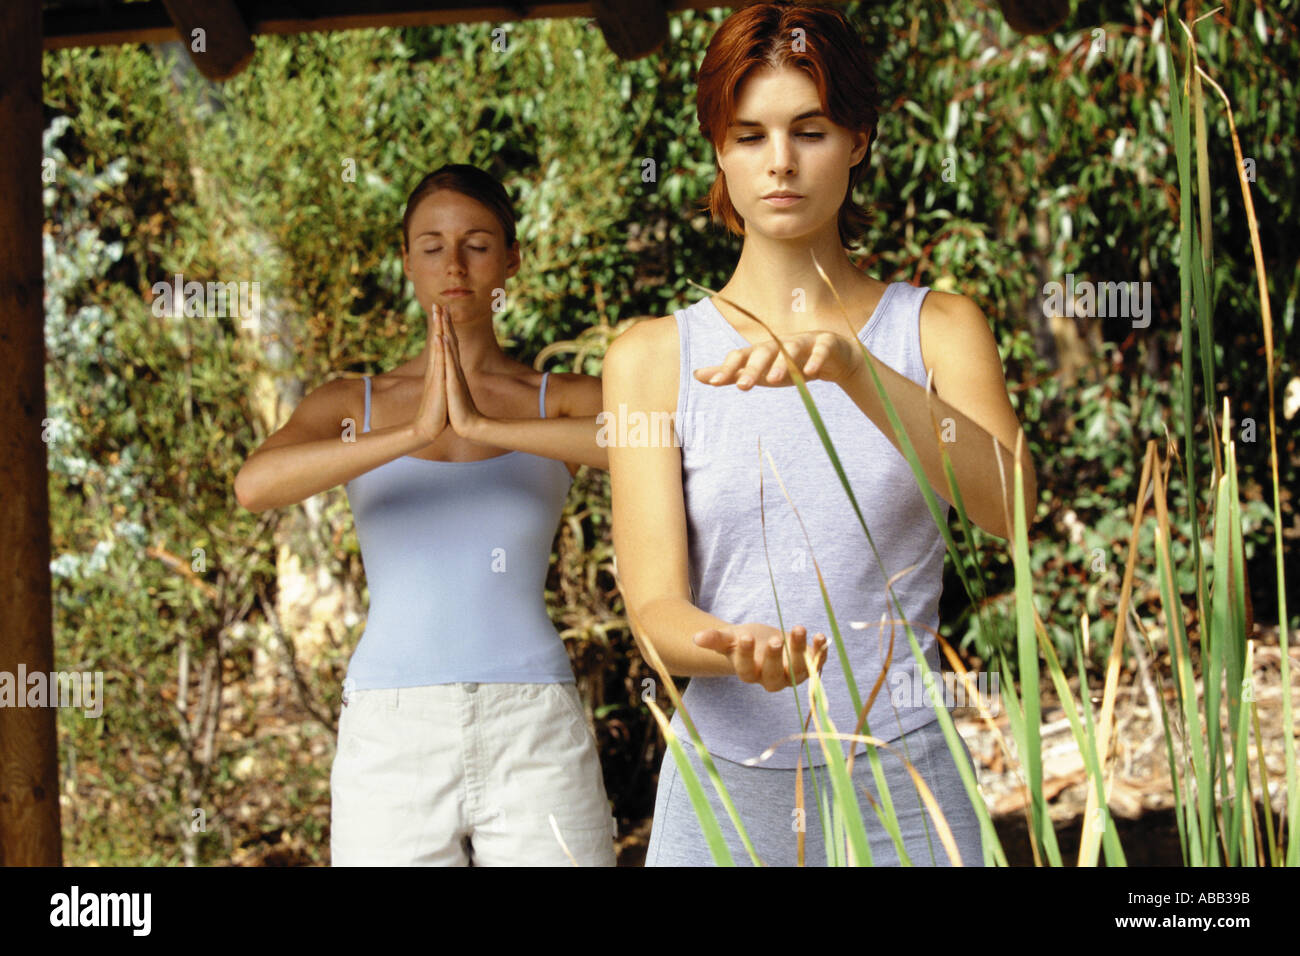 Two women practising tai chi and yoga - Stock Image